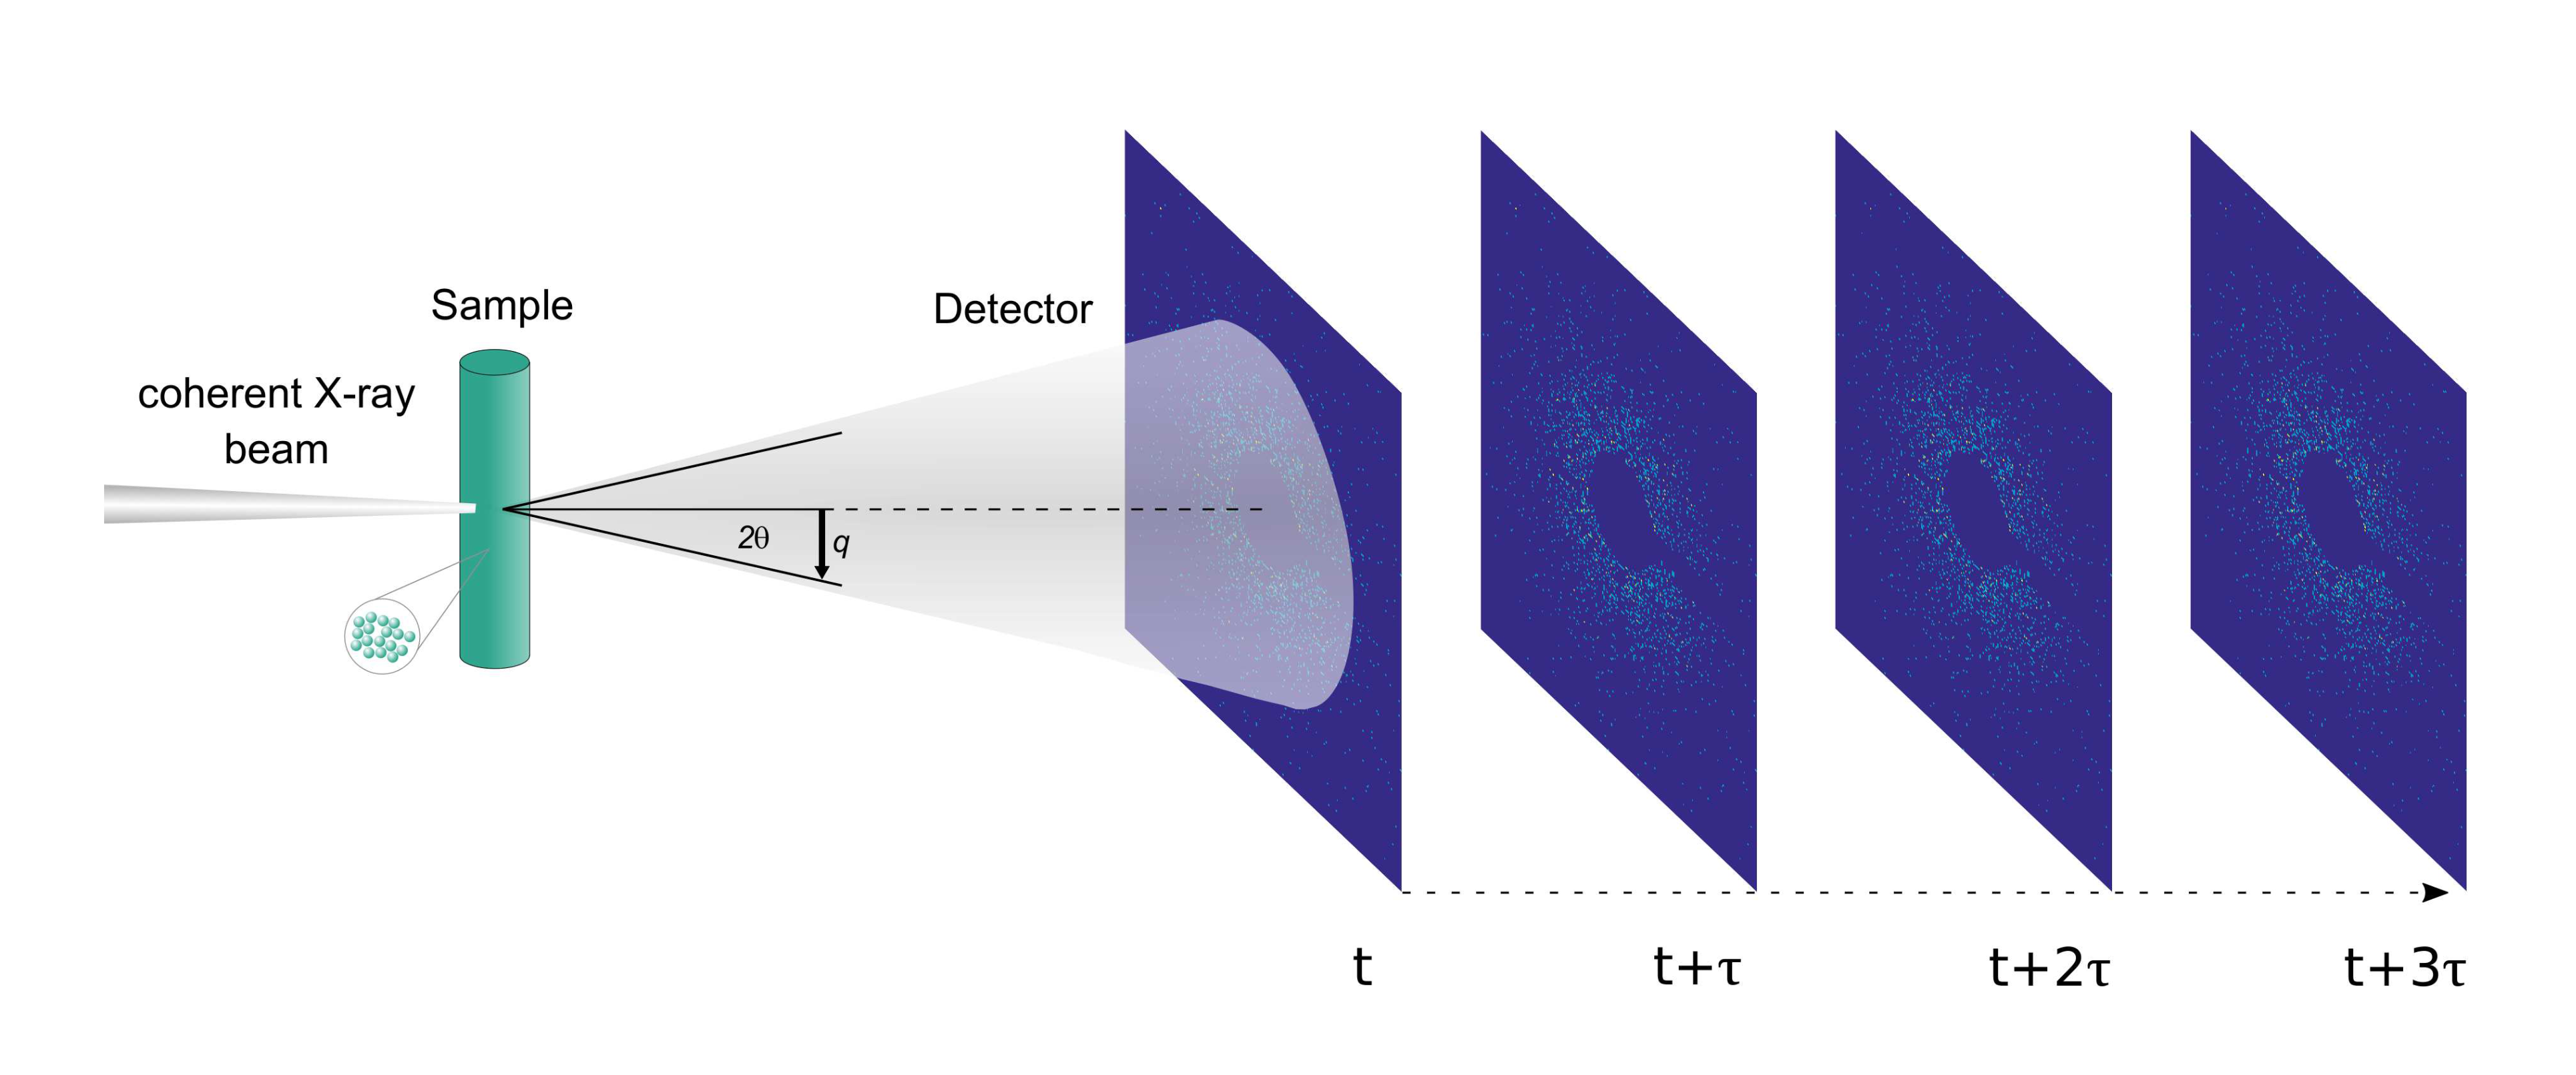 Experimental Setup for the study with an x-ray detector delivering time-resolved speckle patterns